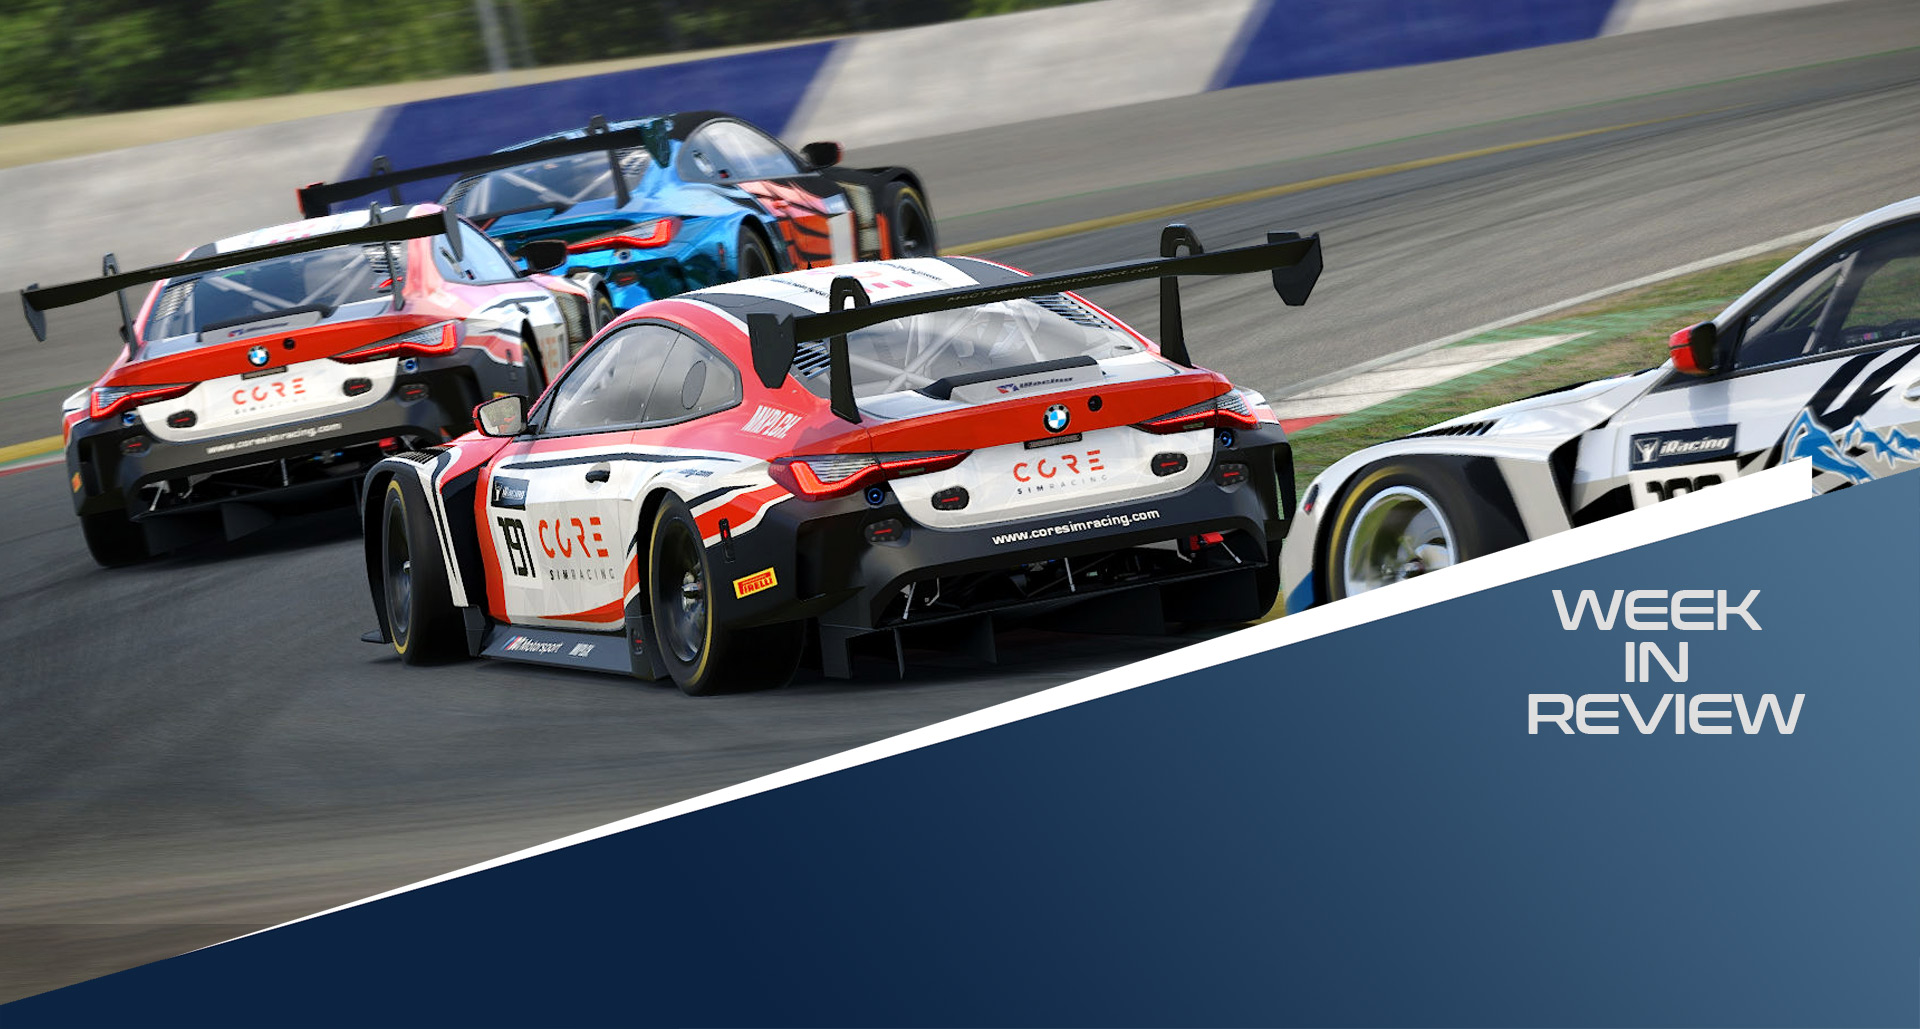 Apex Racing League Weekly Round Up – w/c 21st June 2021